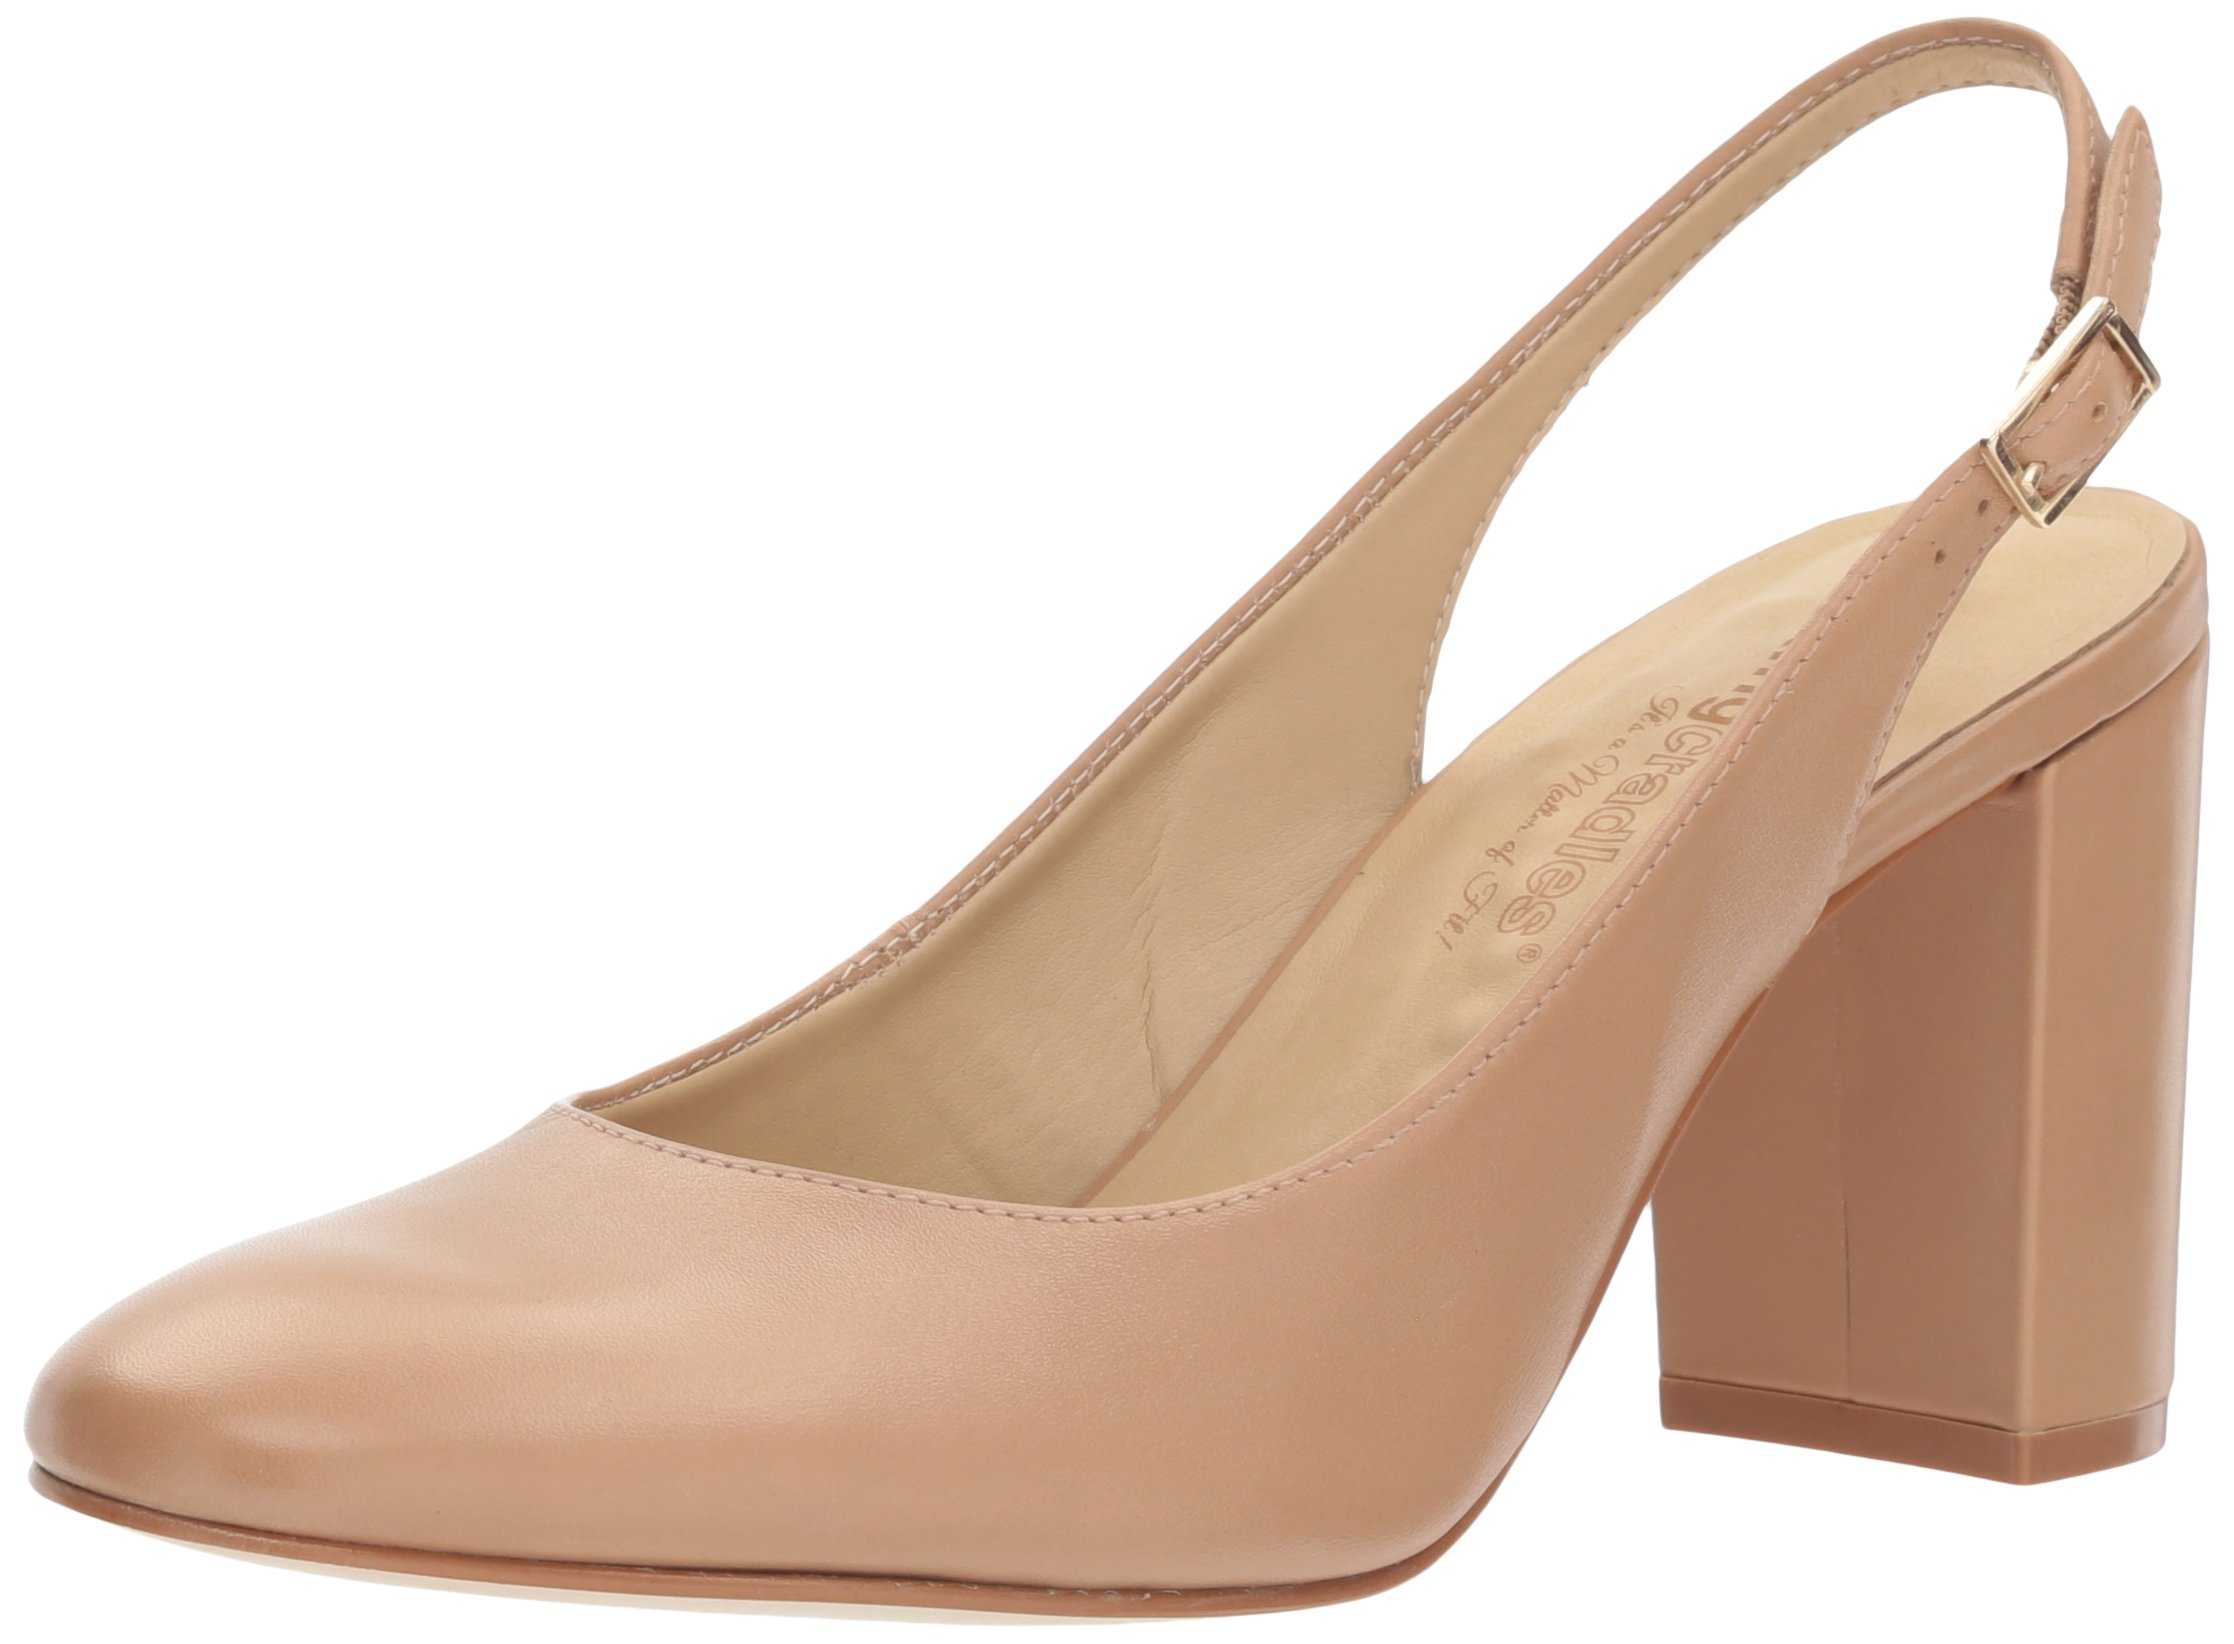 Ros Hommerson Women's Antoinette Pump,White,9 W US by Ros Hommerson